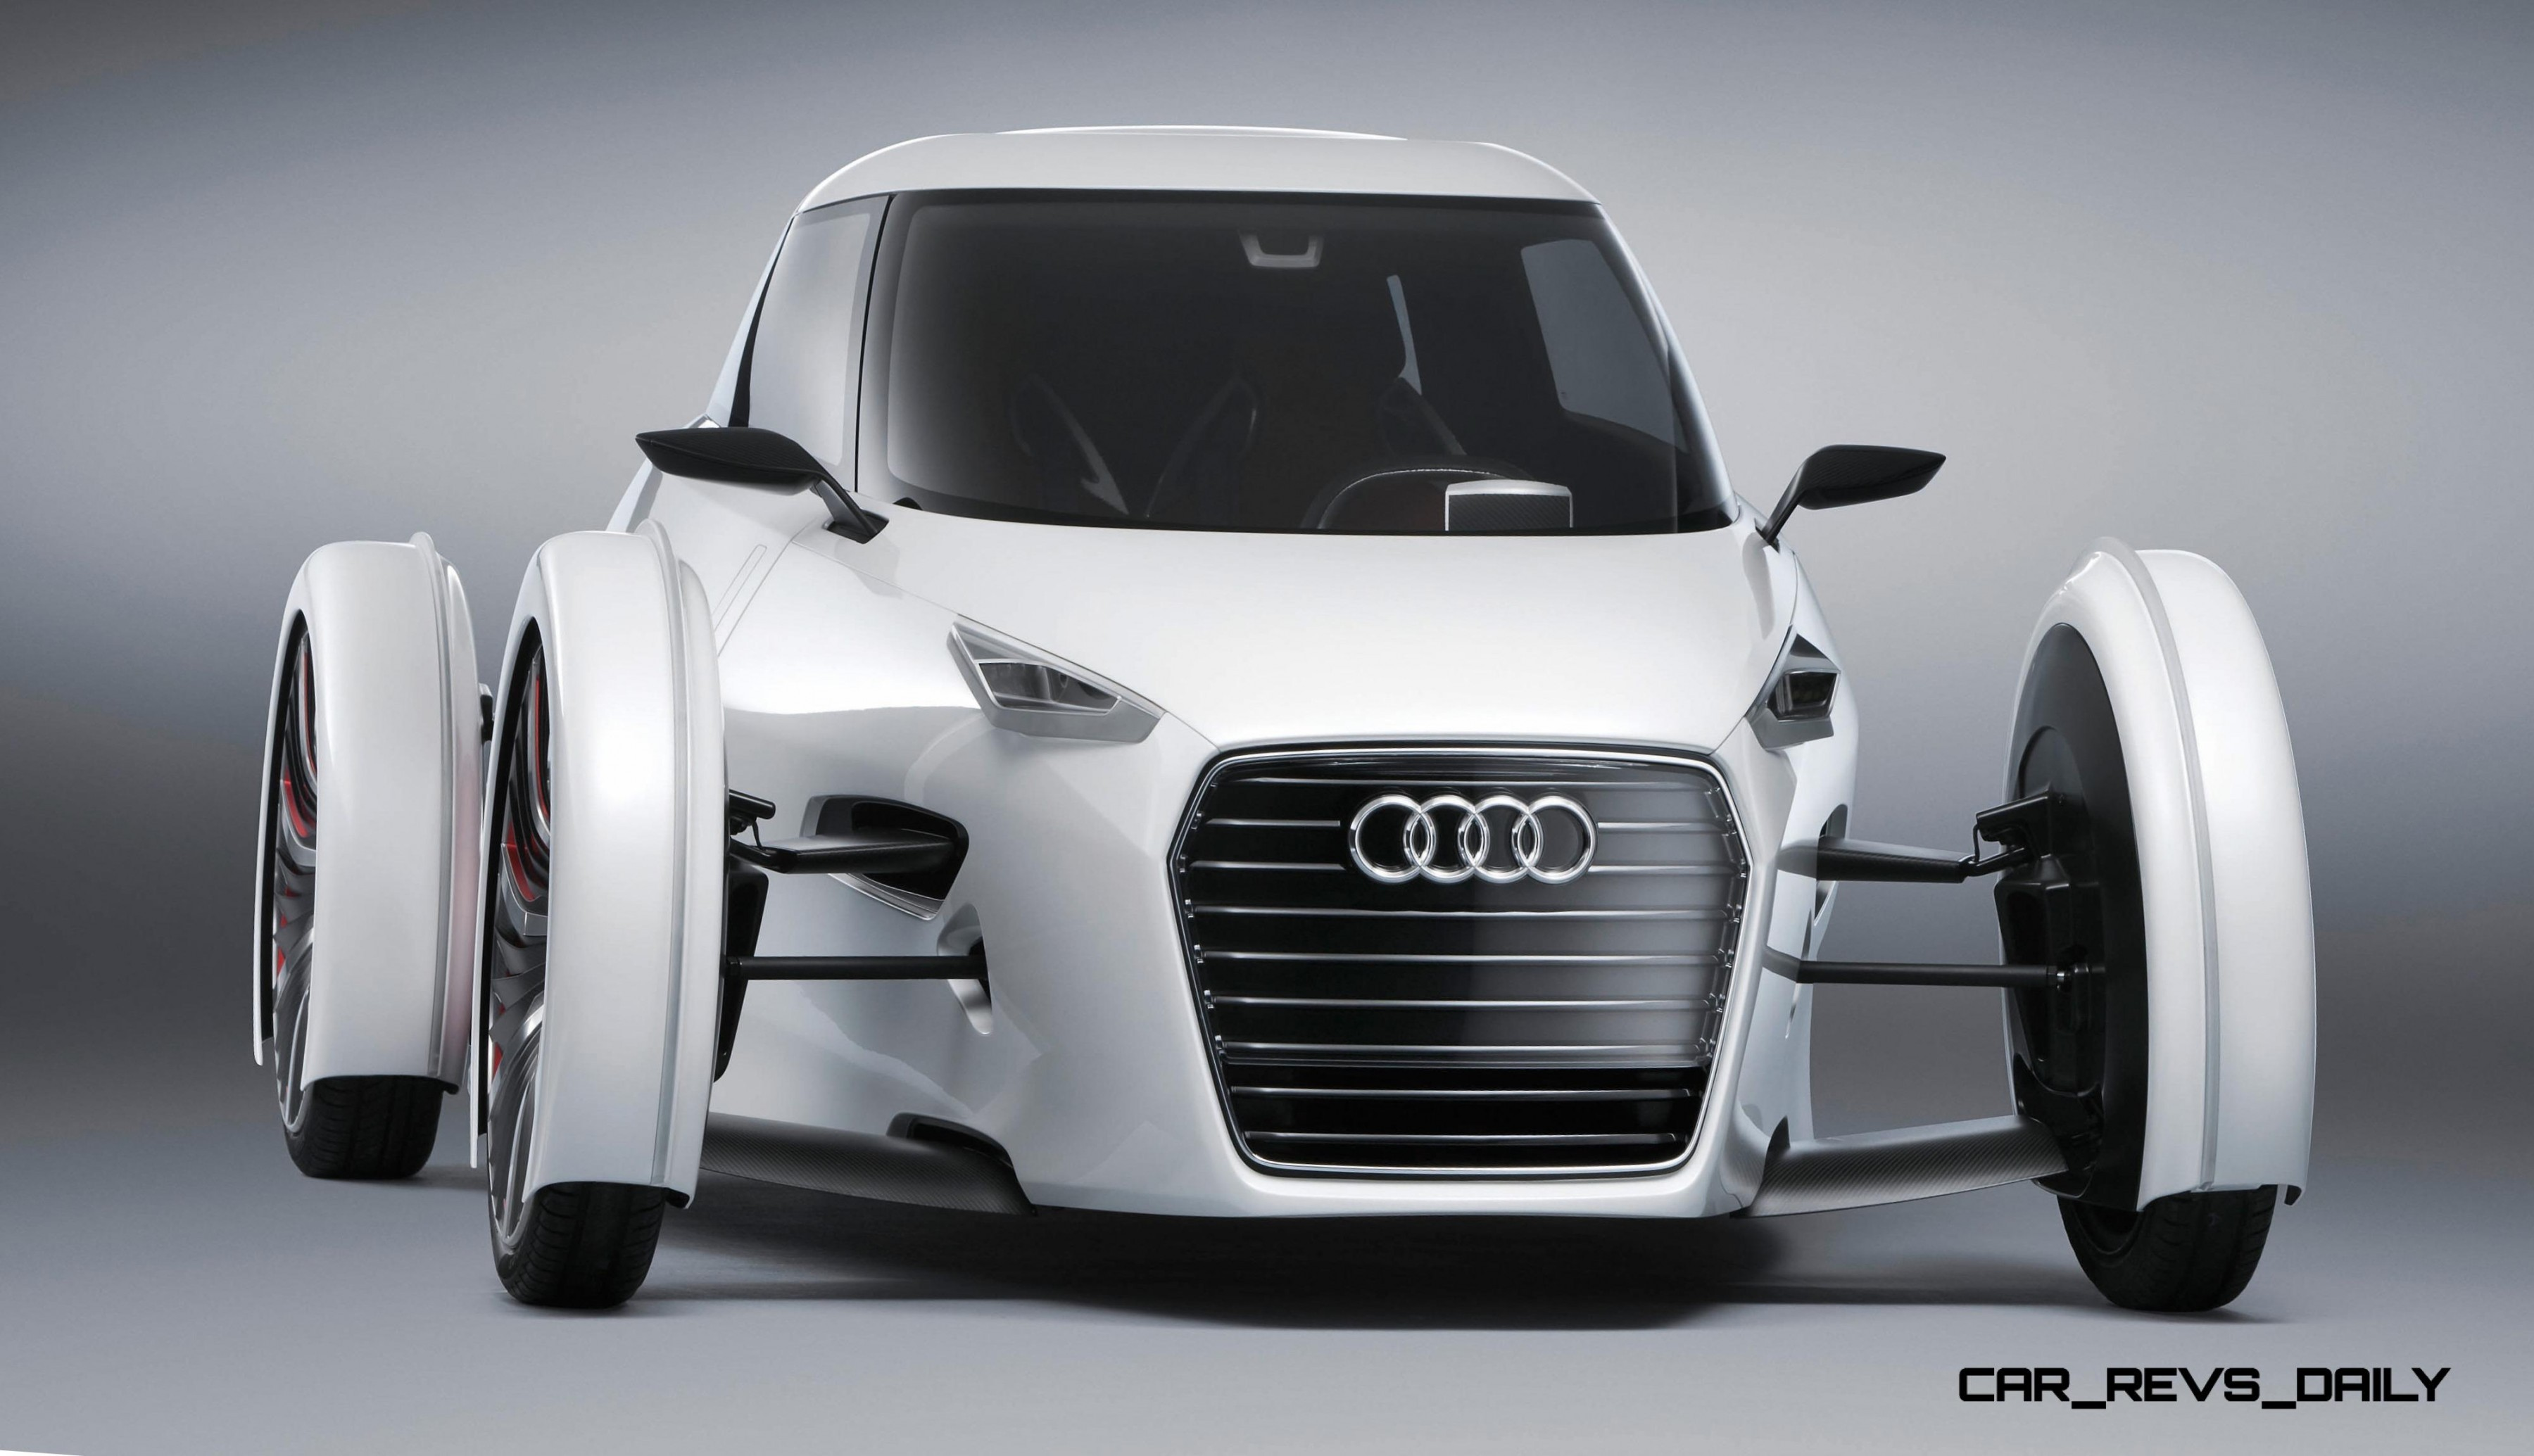 Car Seat And Buggy 2011 Audi Urban Concept Is 2 Seat Commuter Ev For Stylish